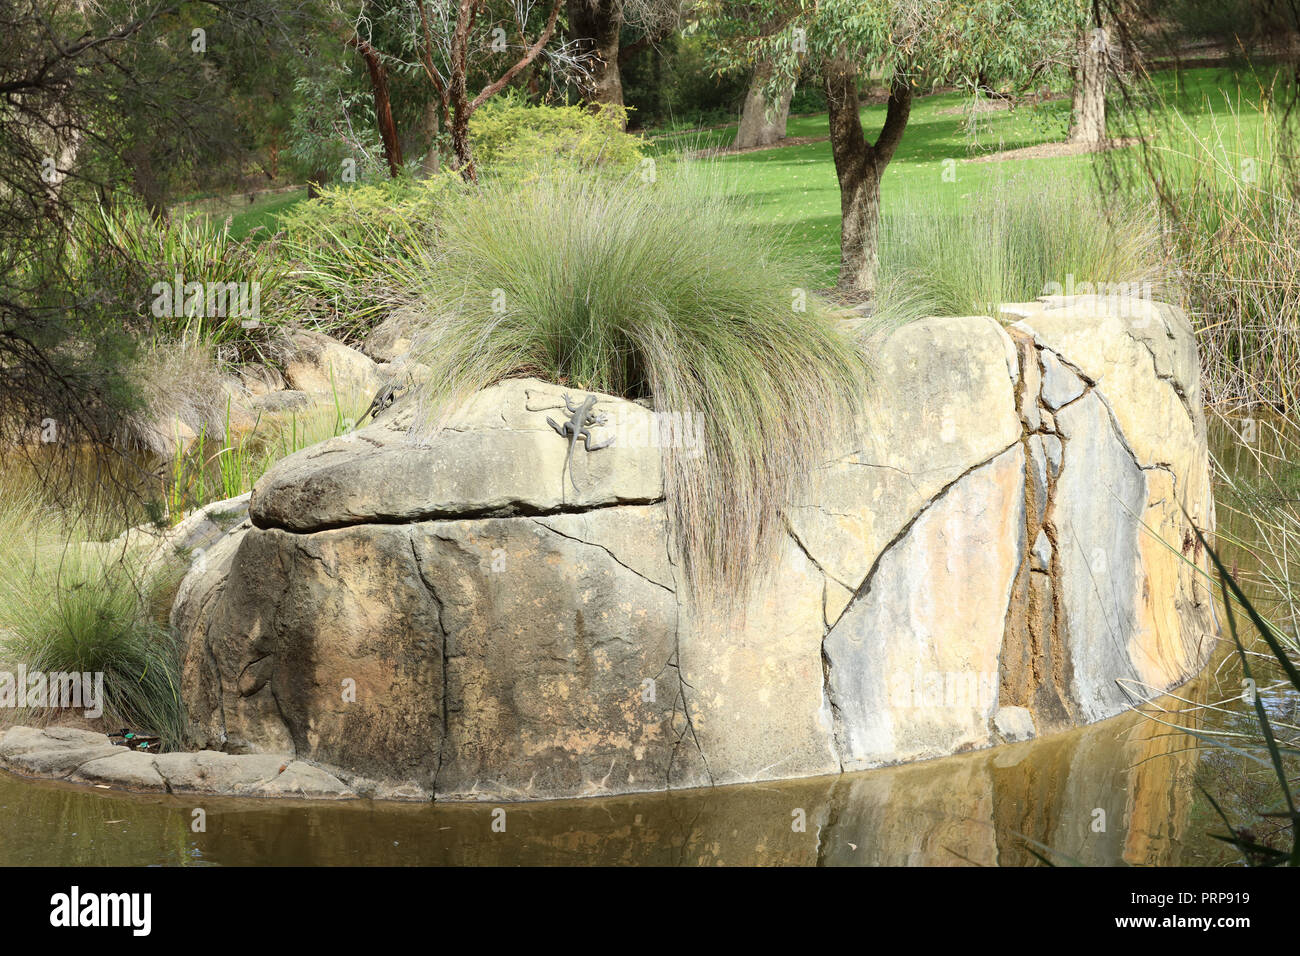 Western Australian Botanic Garden, Kings Park, Perth with ancient rocks representing The Darling Scarp streams and 2.5 billion years old rocks. - Stock Image